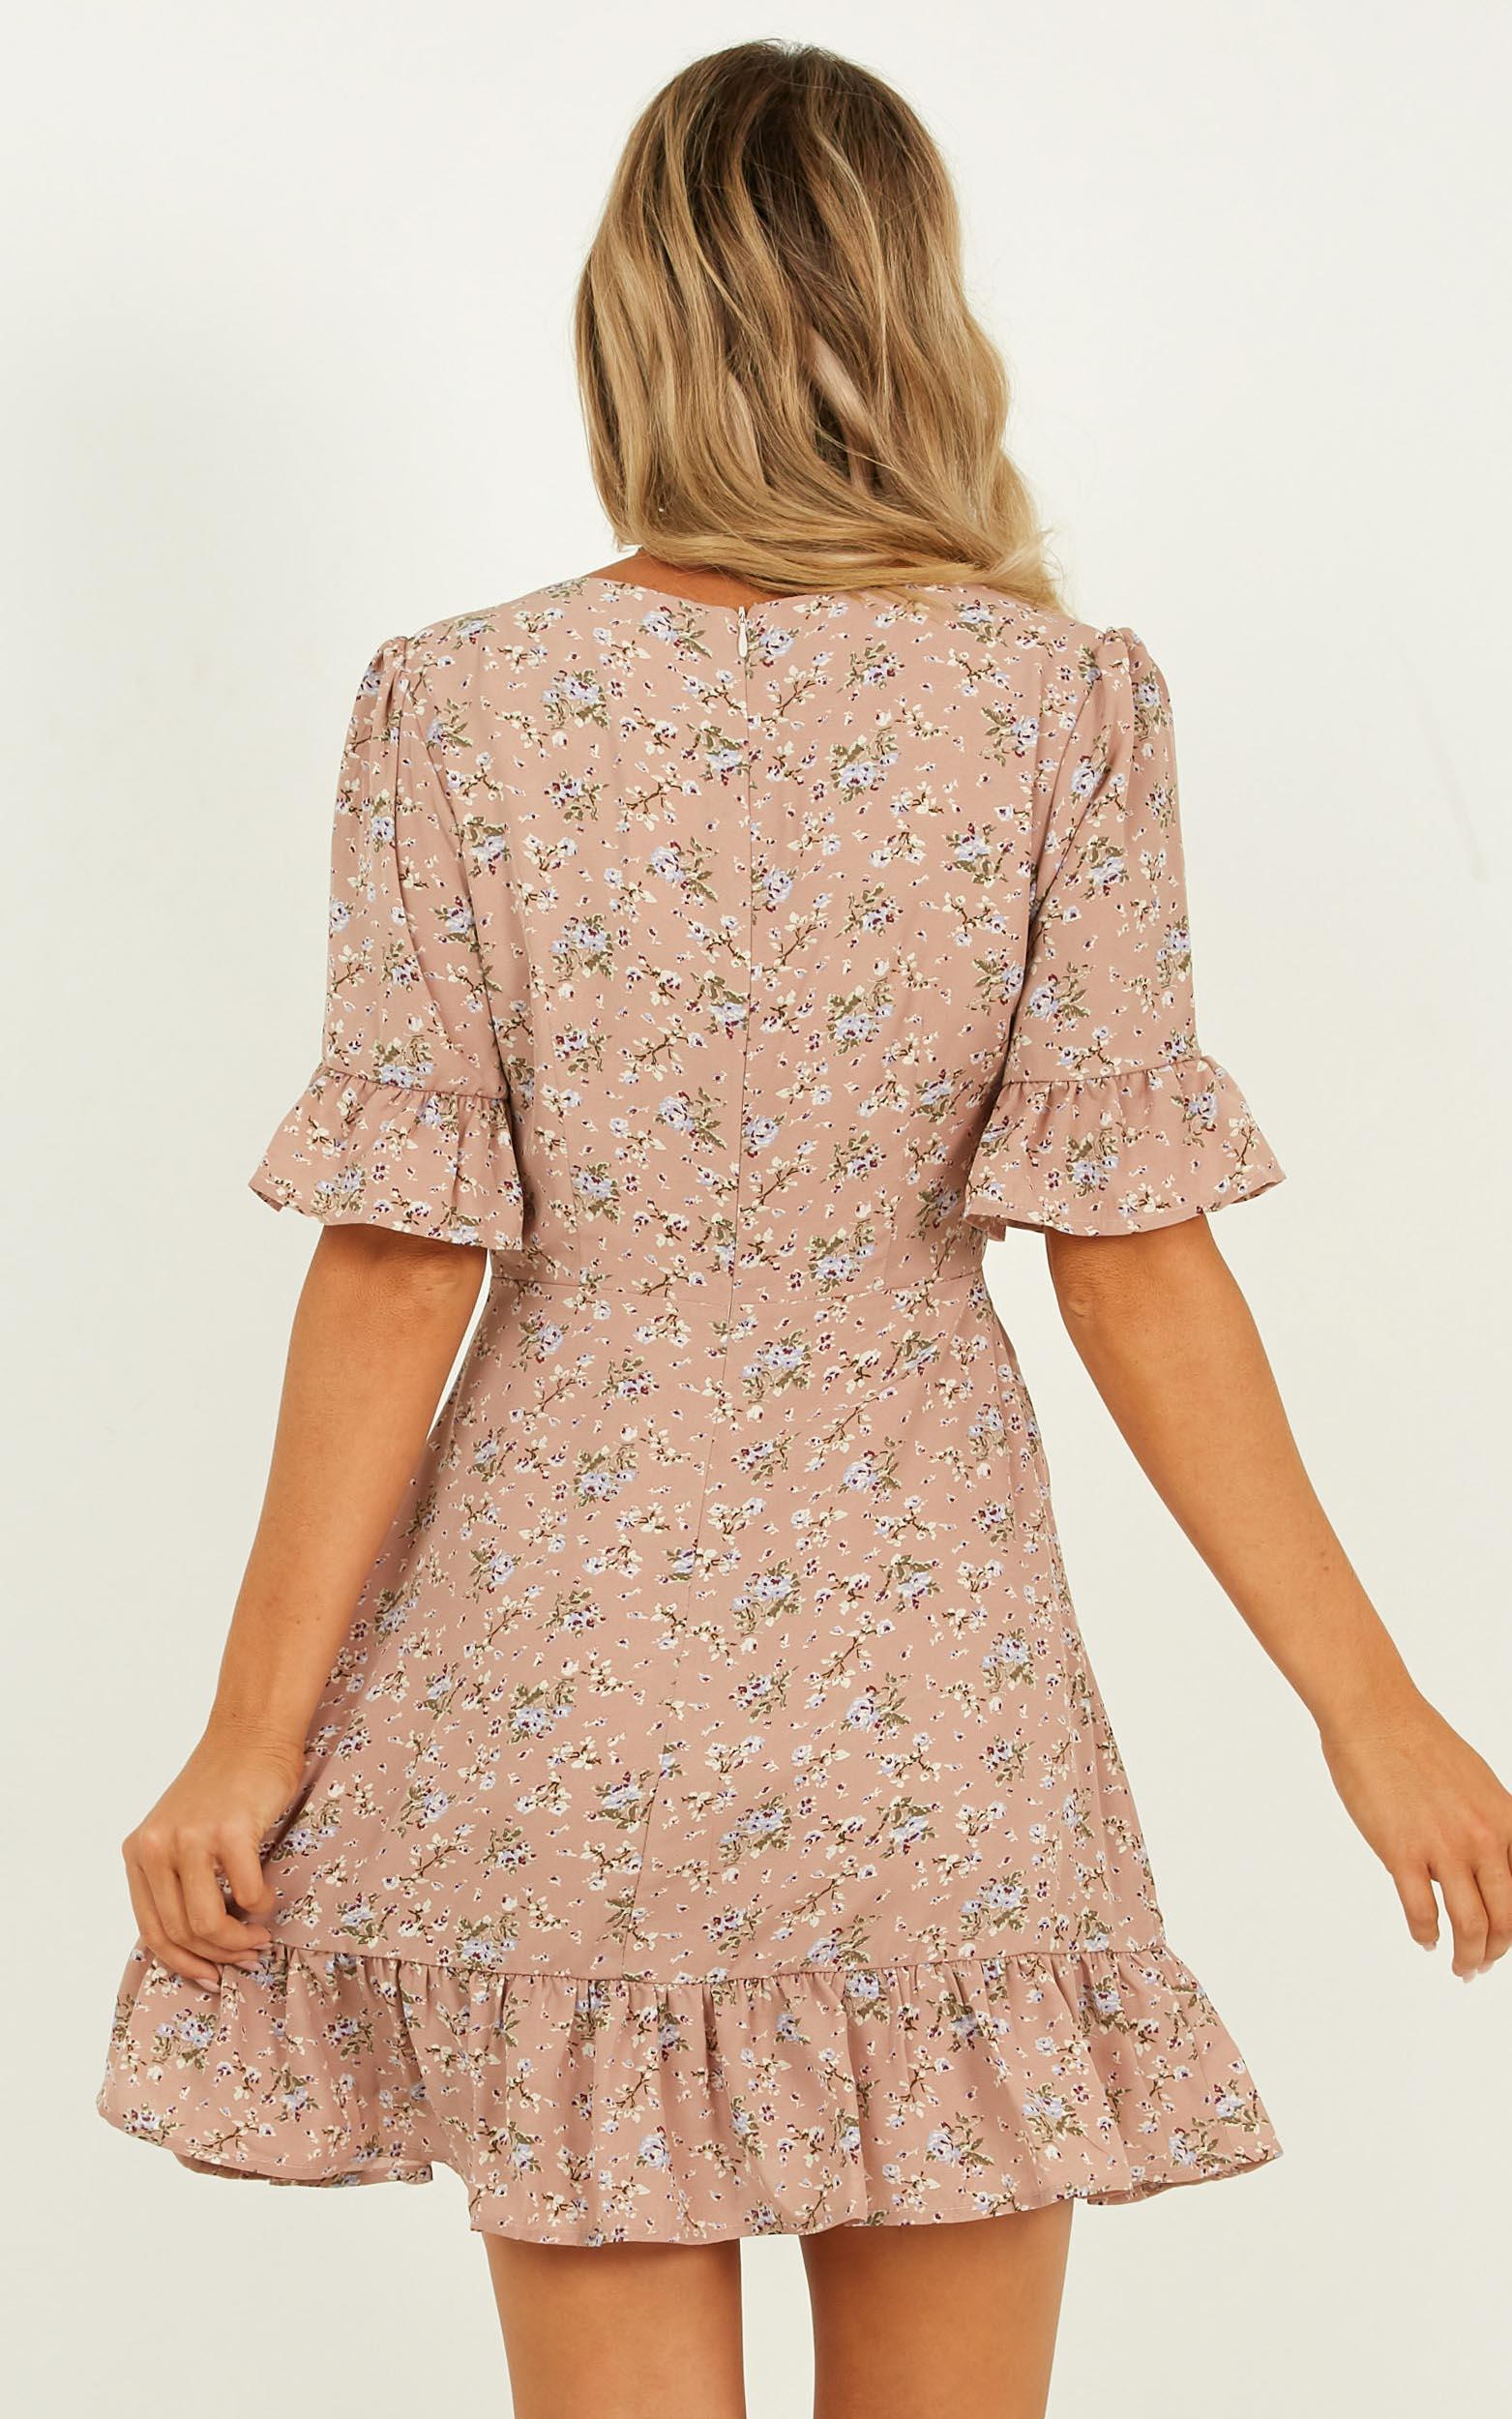 Only The Best Dress in mocha floral - 20 (XXXXL), Mocha, hi-res image number null